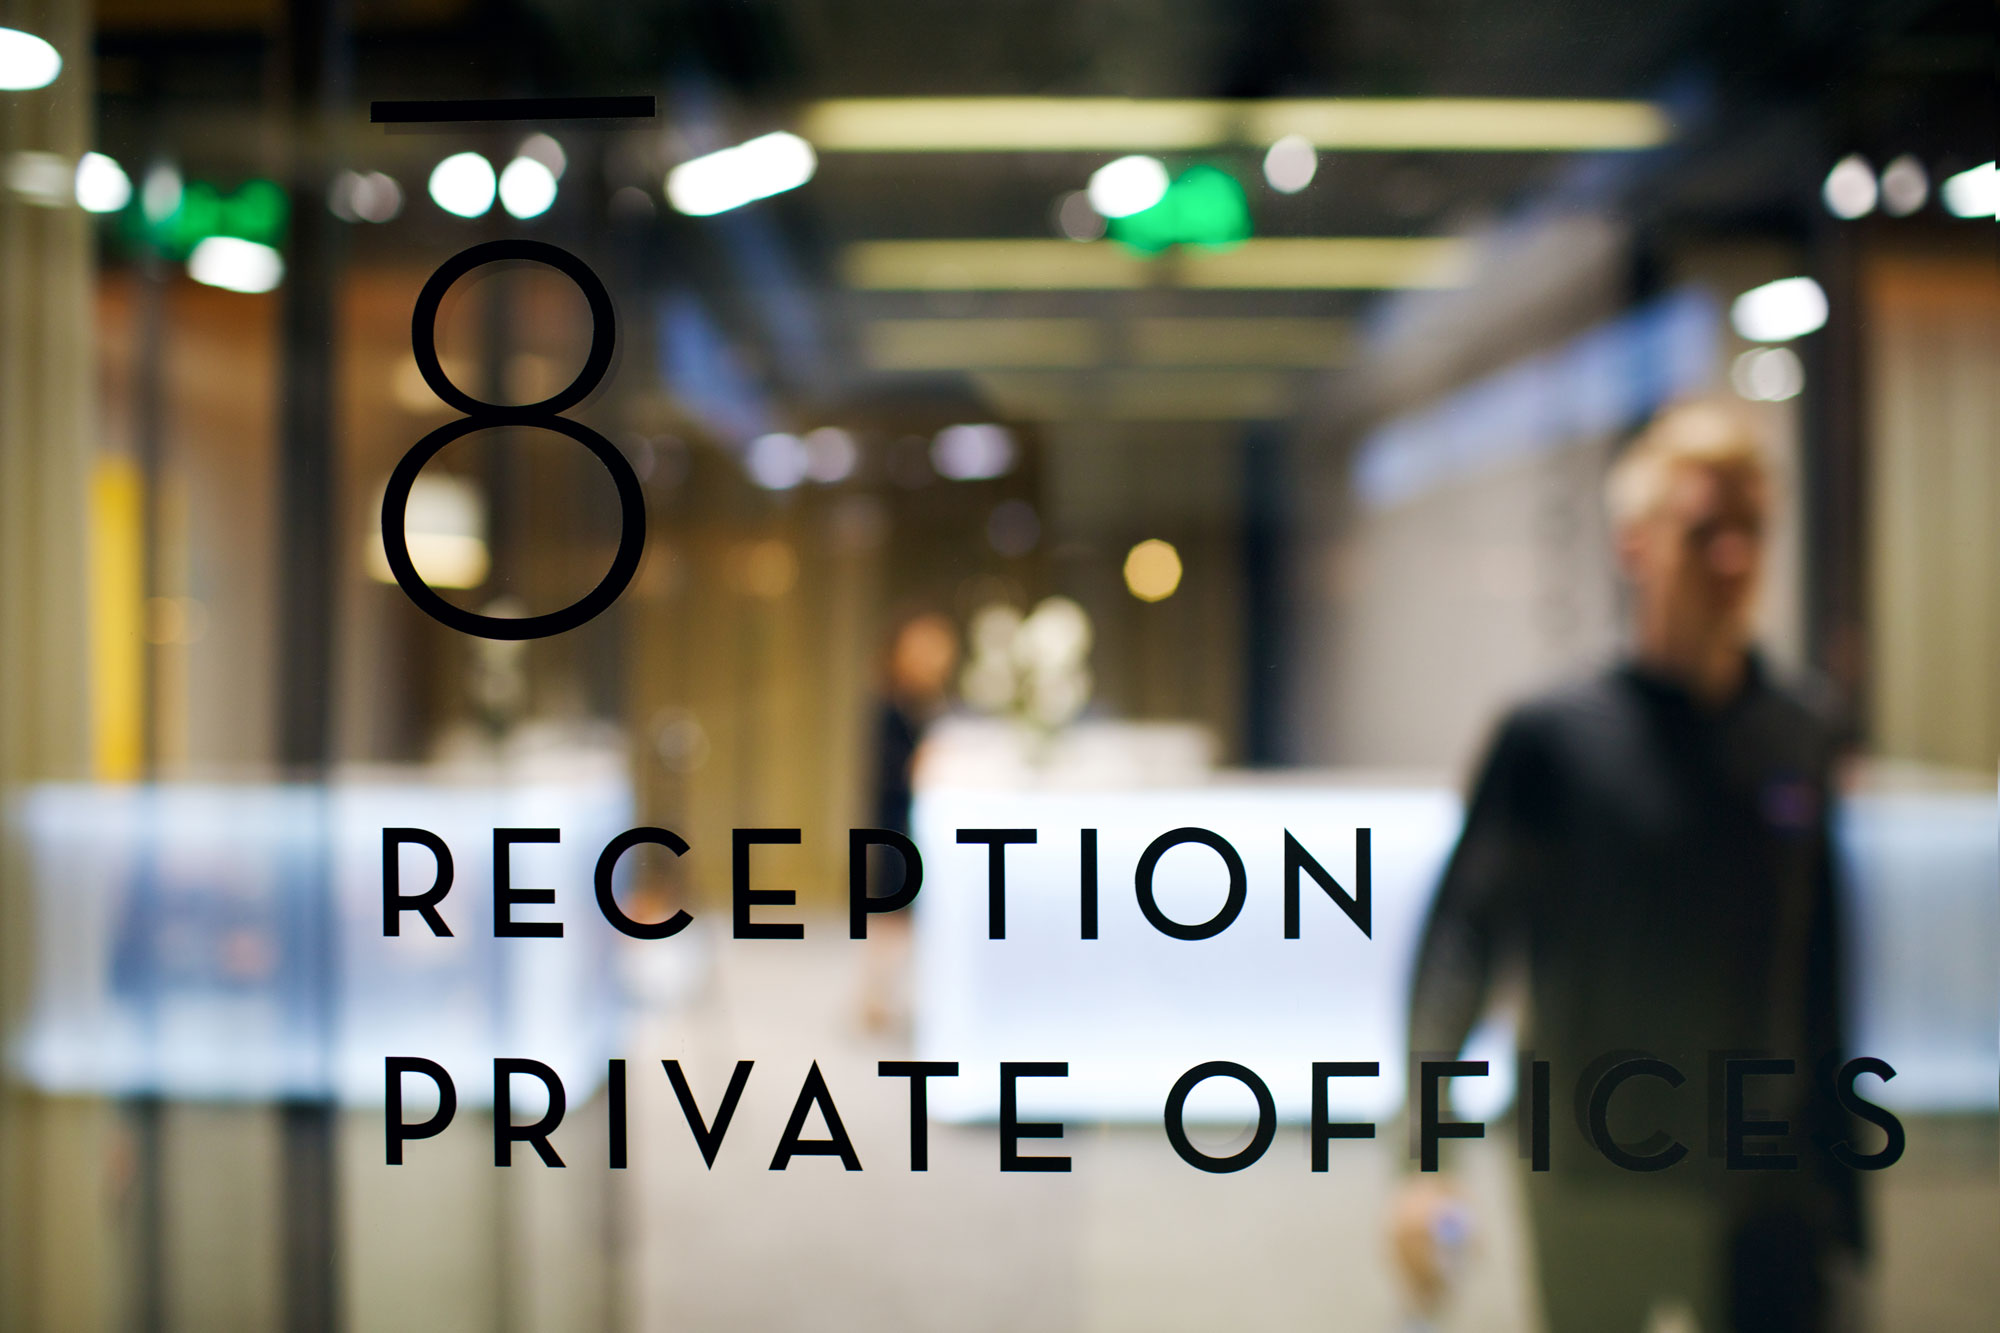 Reception of Private Offices